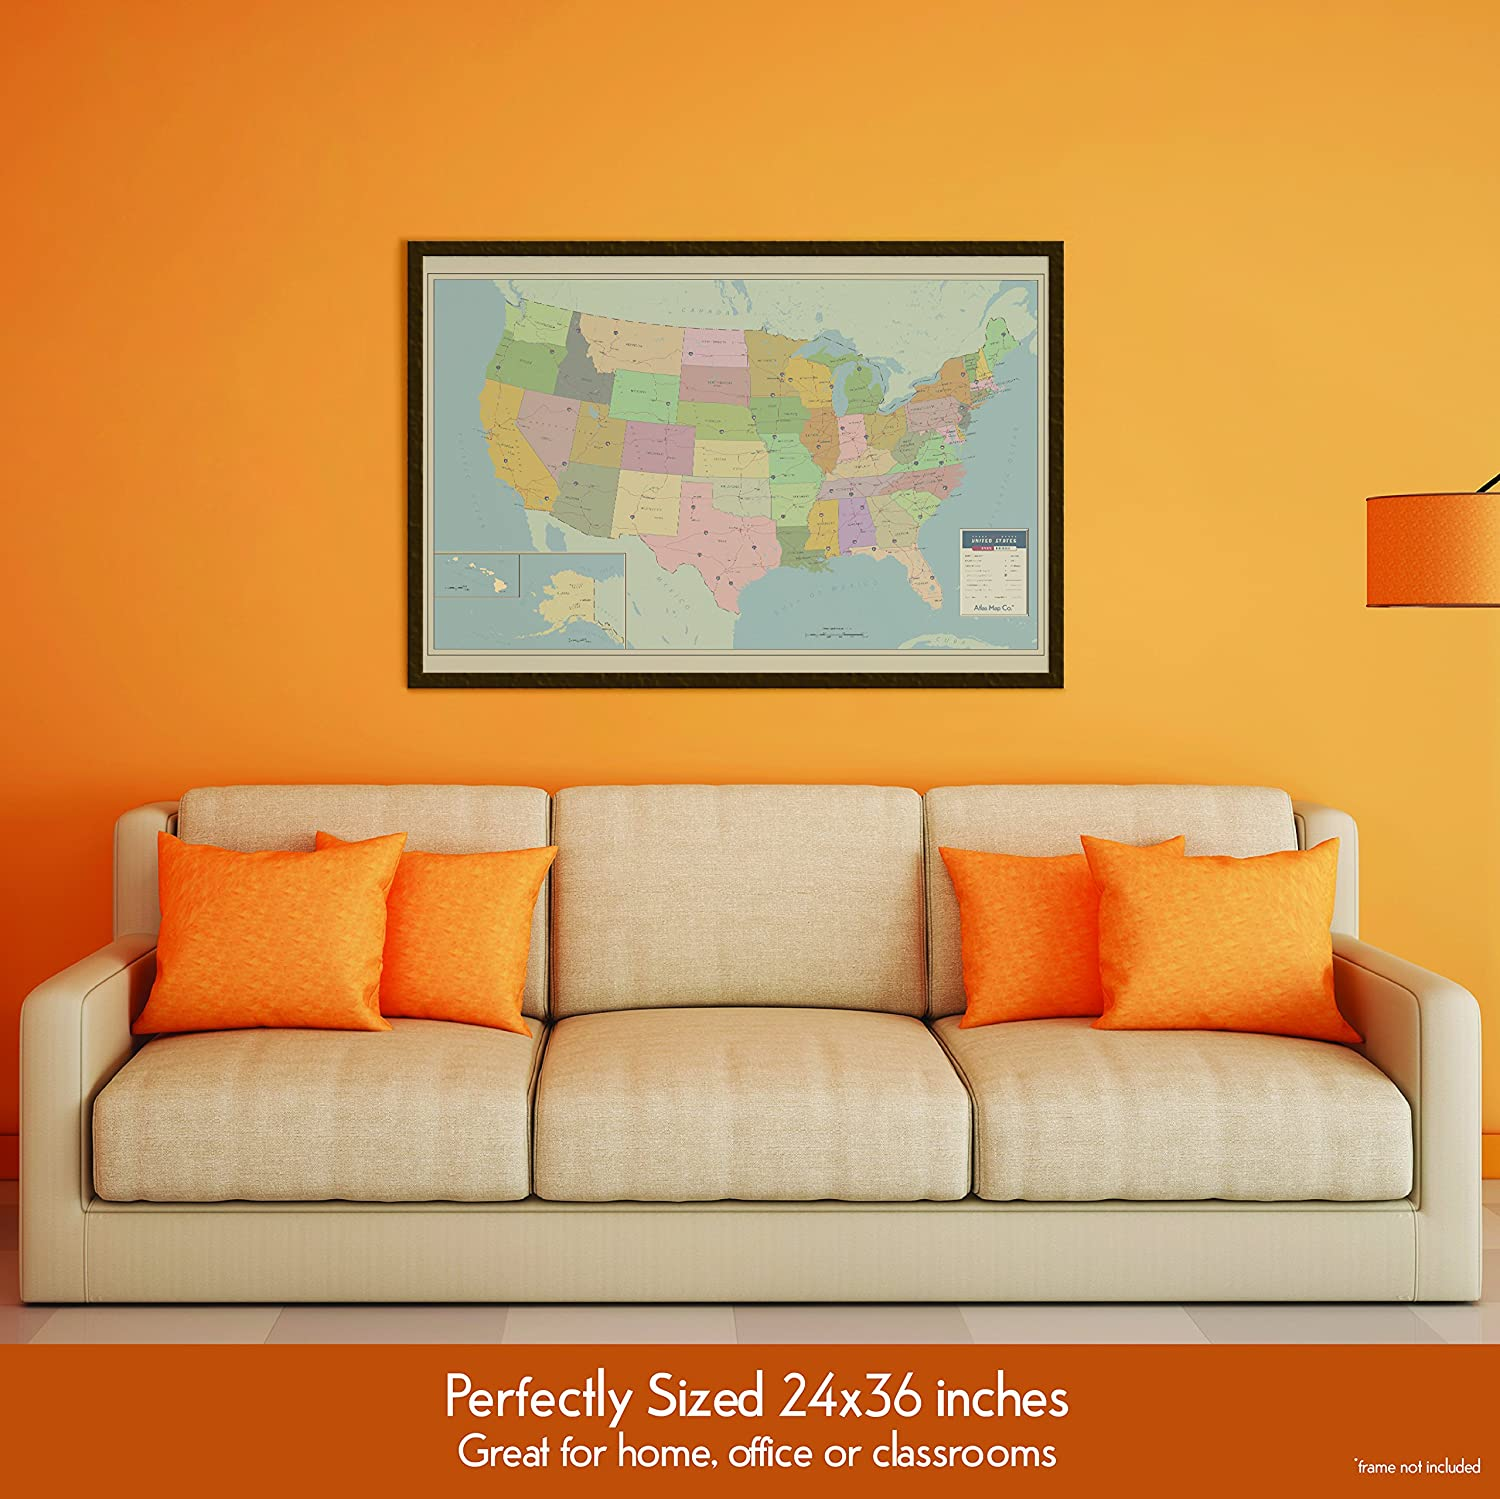 Amazon.com : Map of the United States of America (USA) 24x36 inches ...